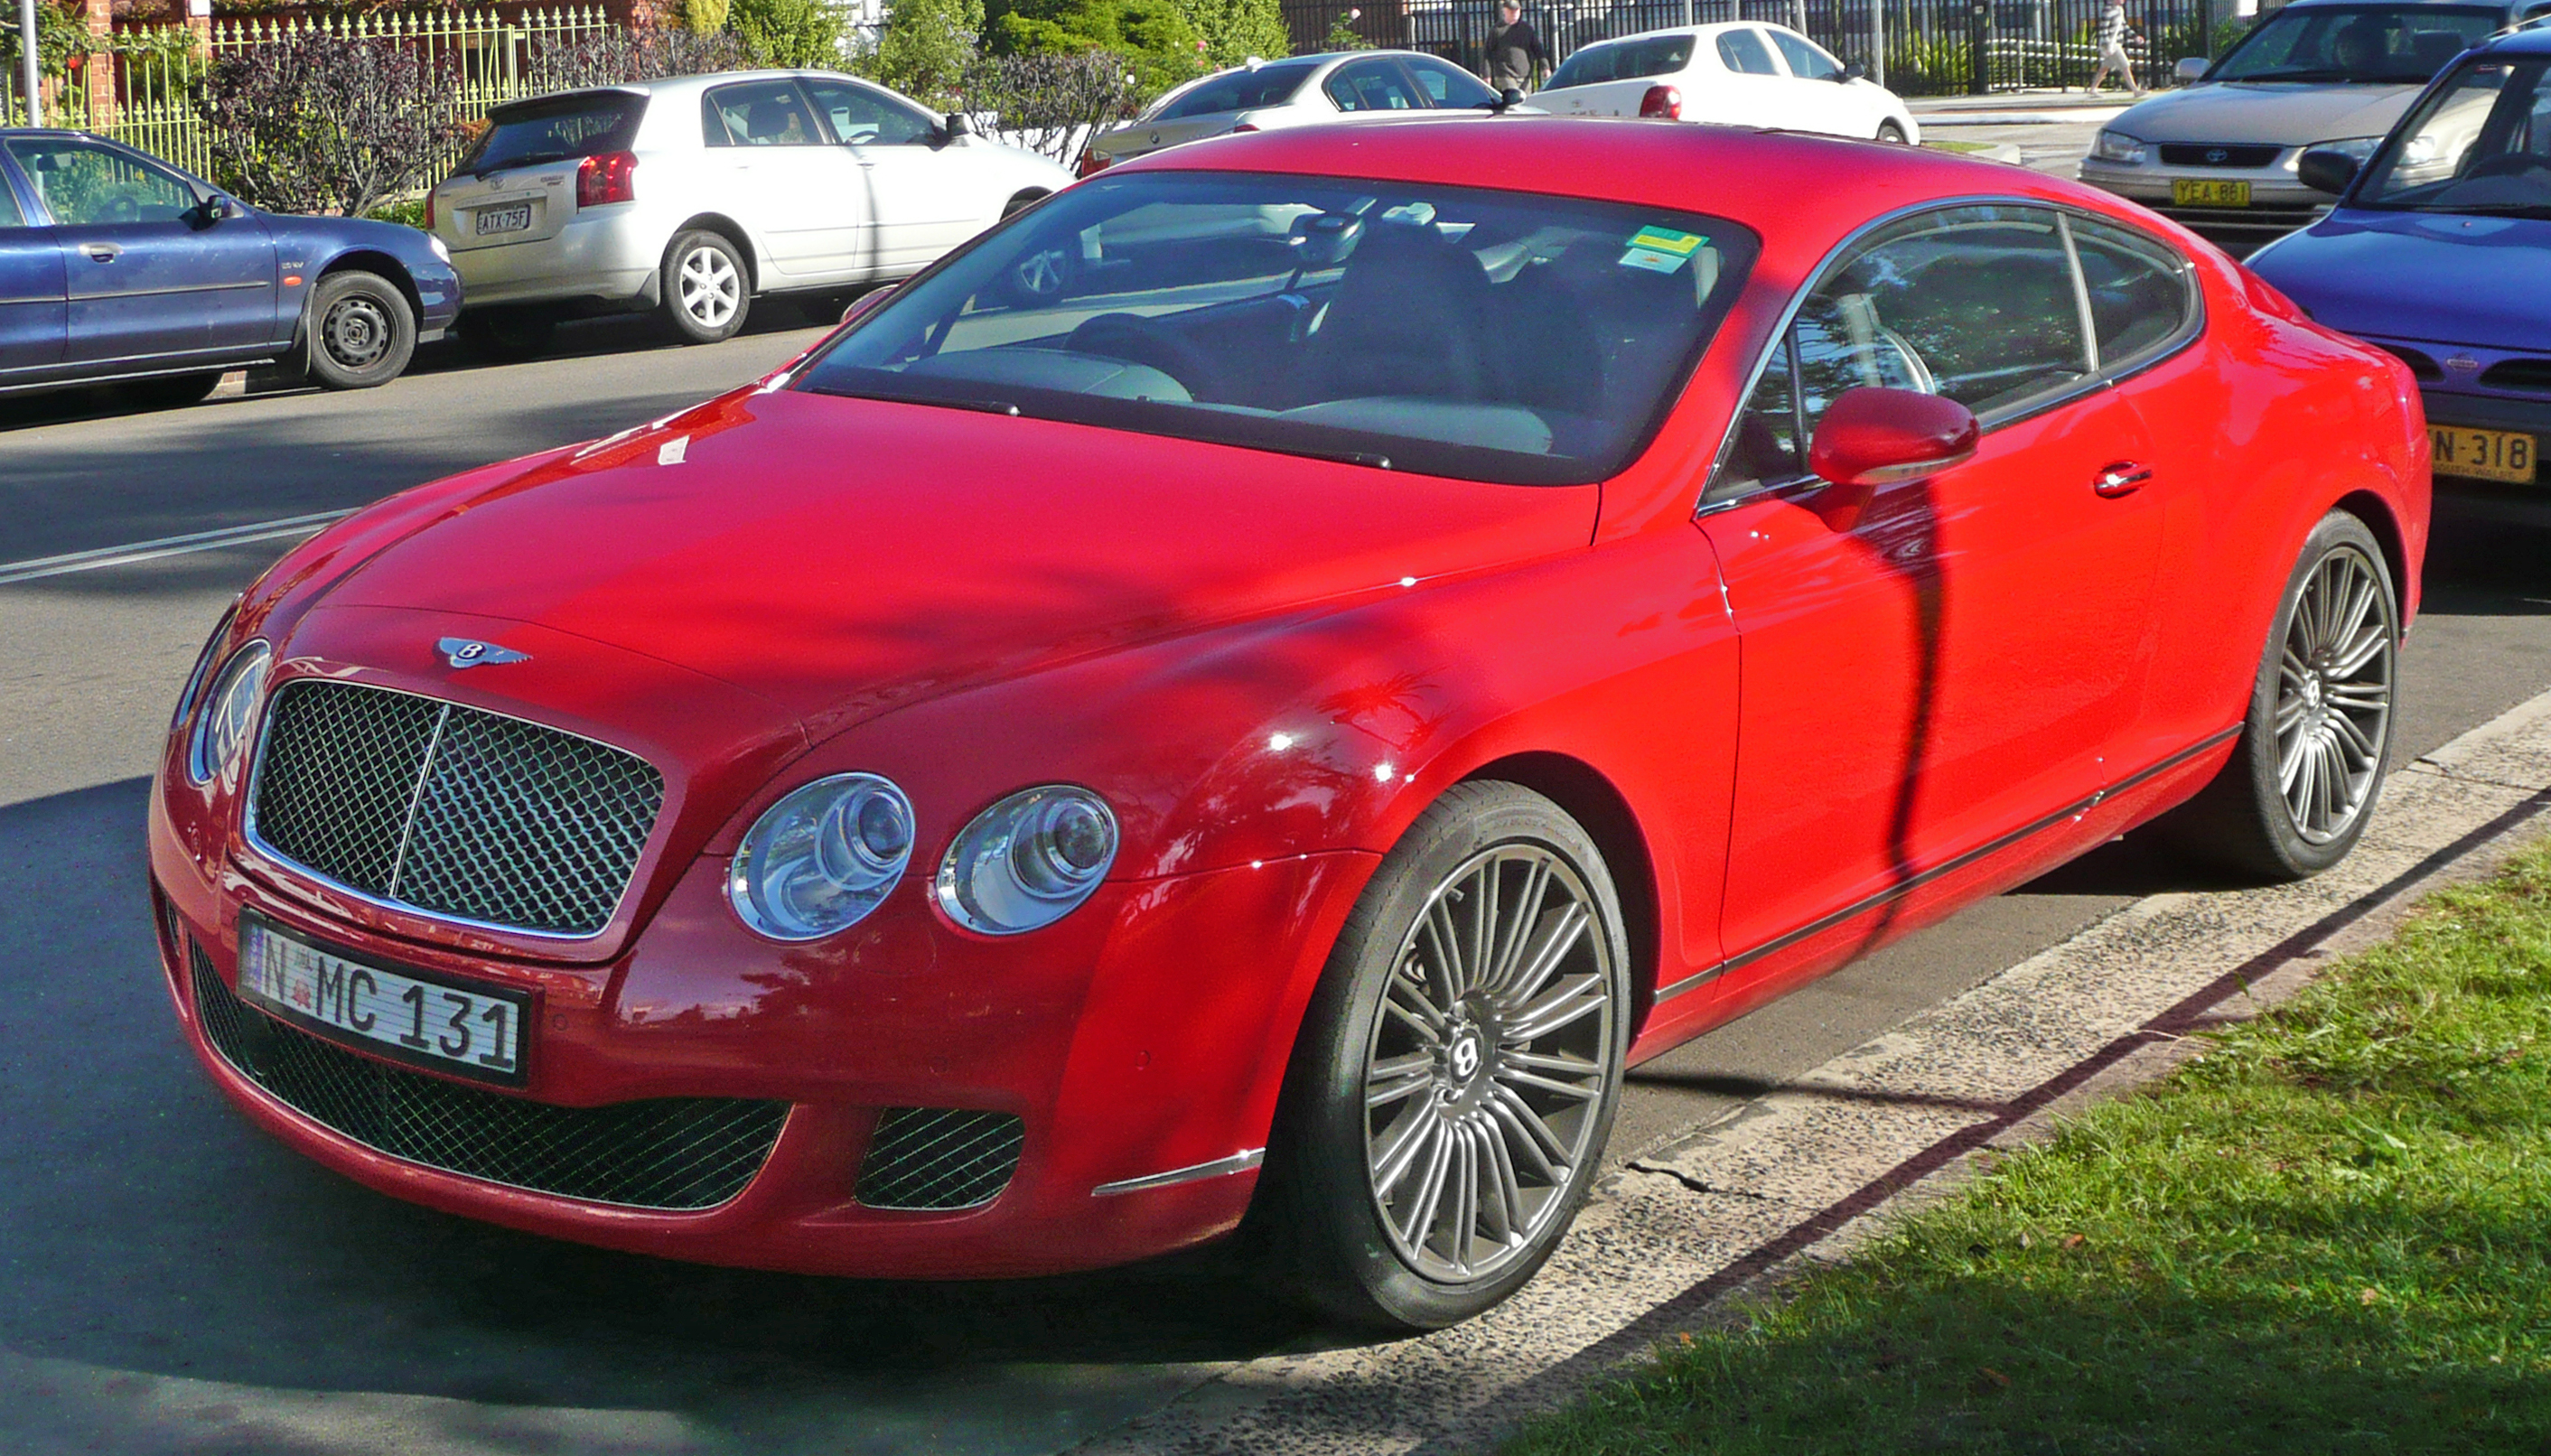 2010 Bentley Continental Gt Speed Image 16